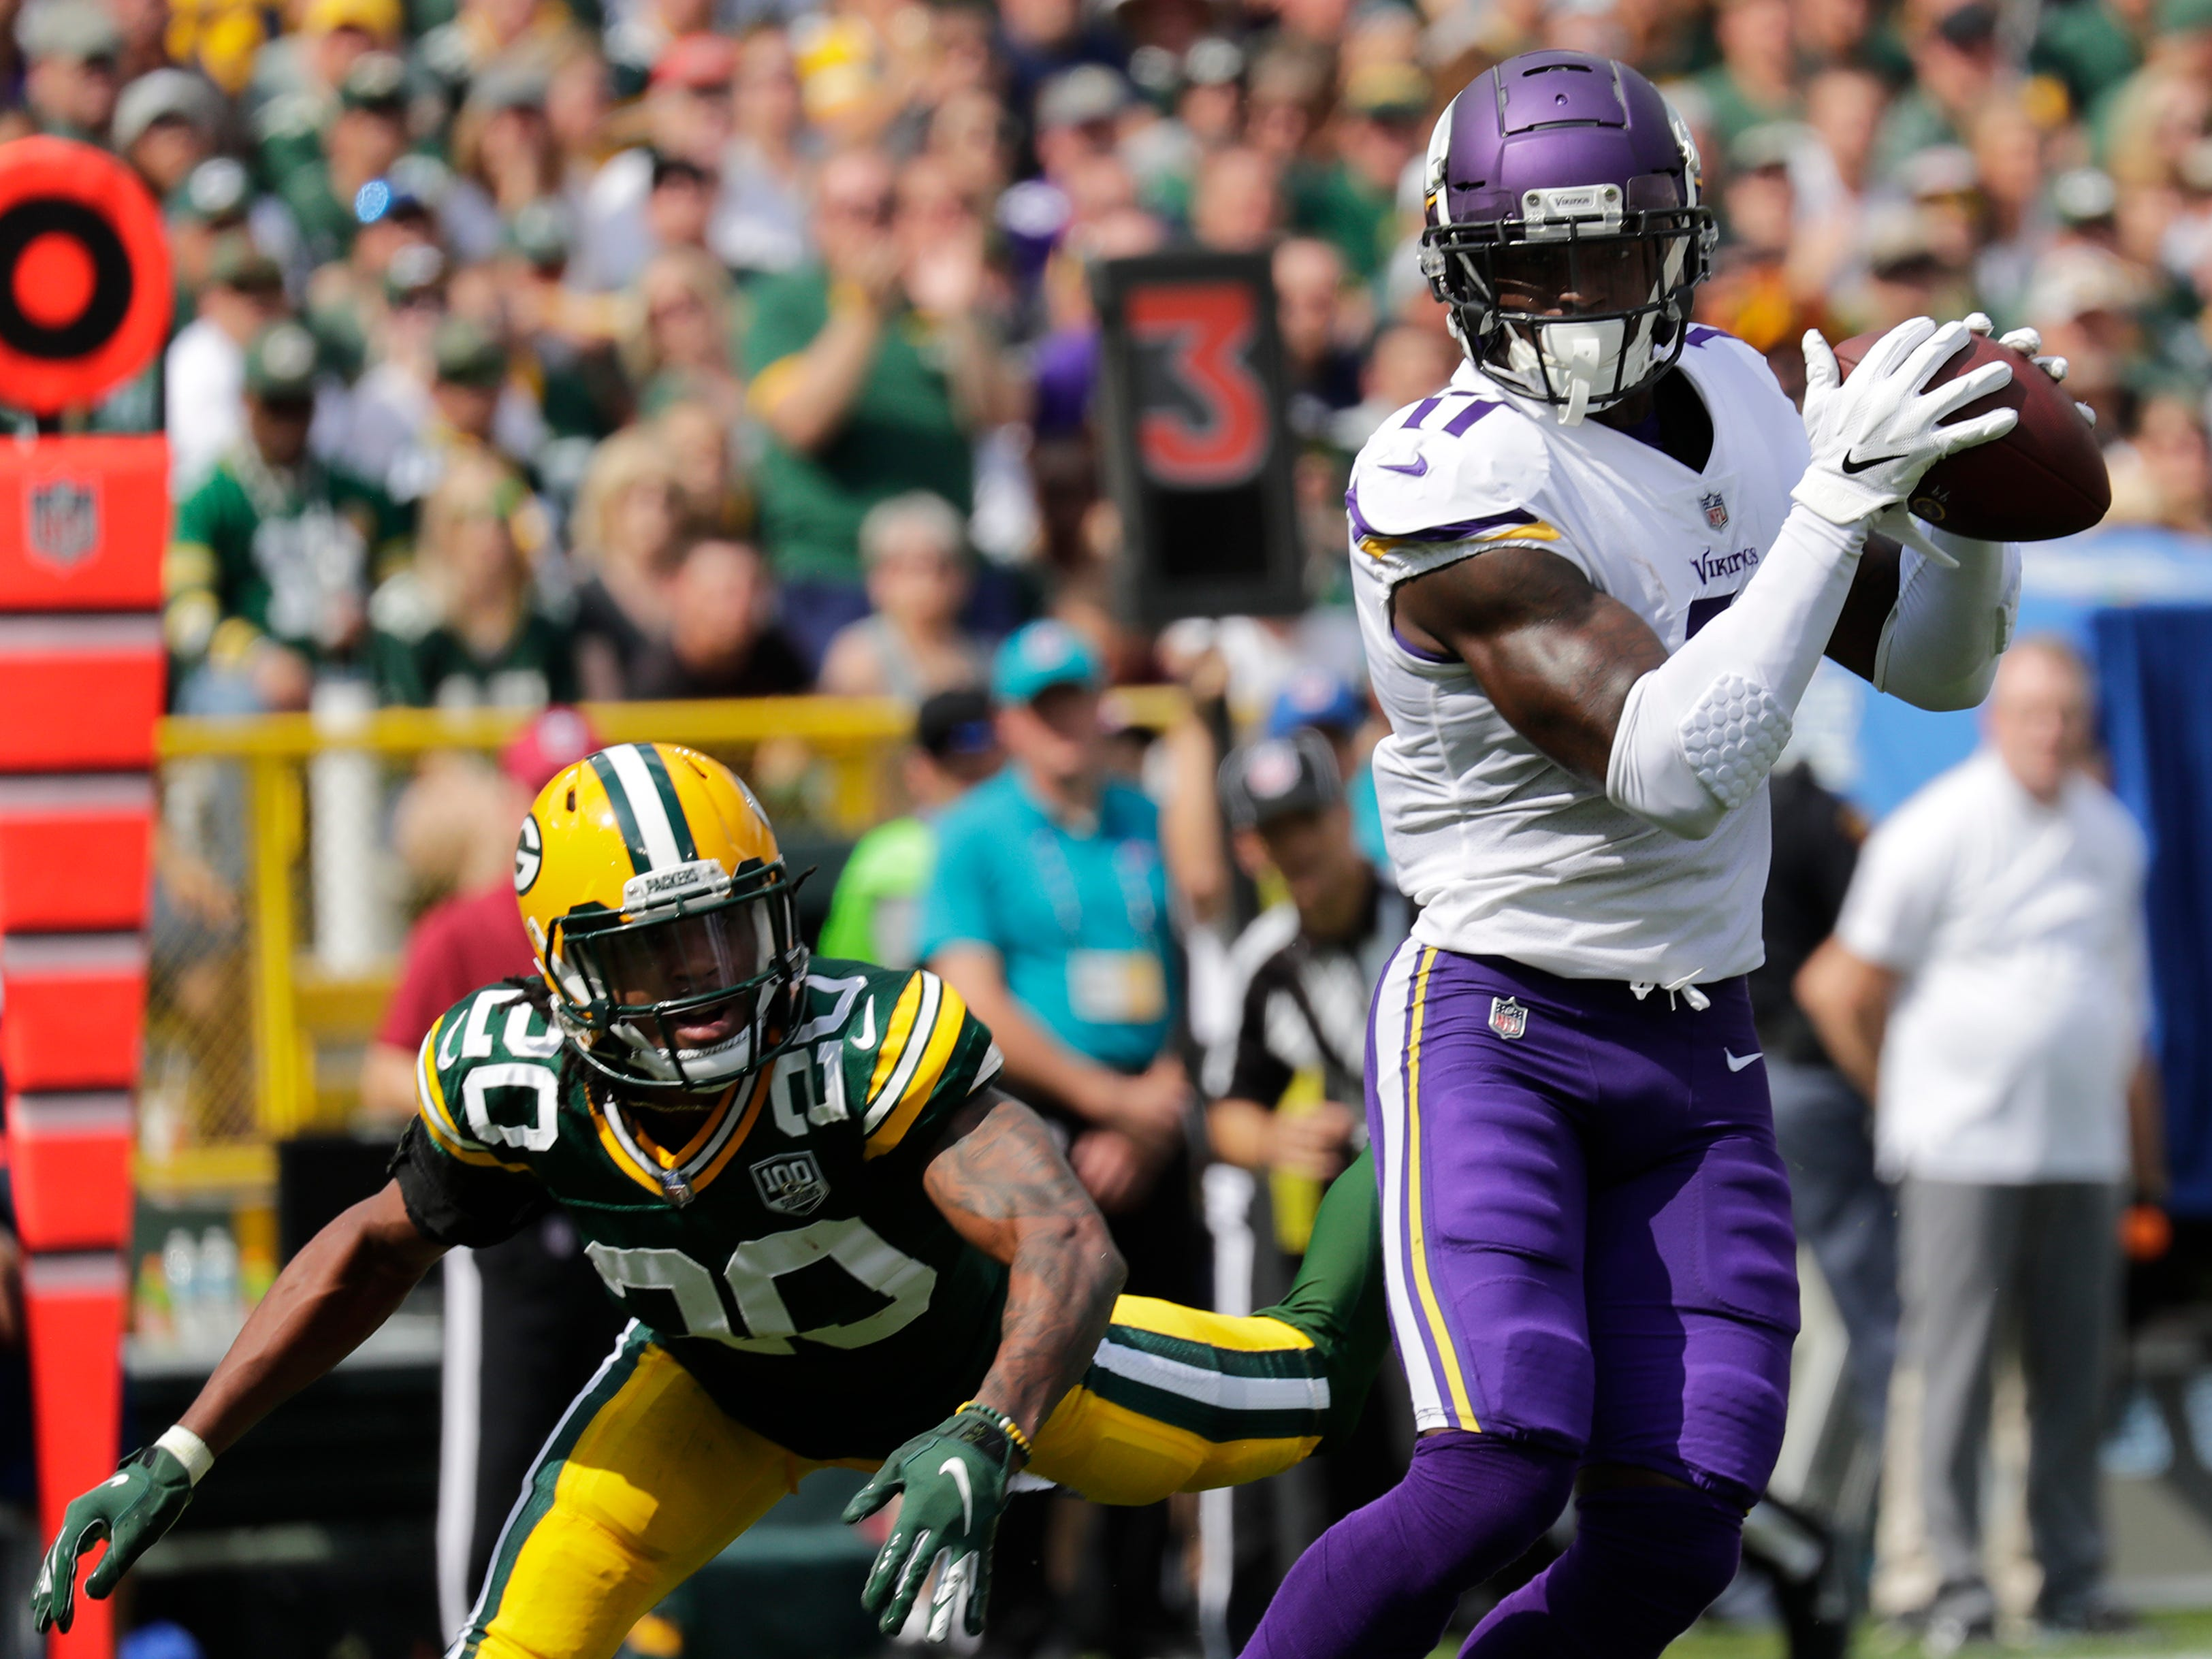 Minnesota Vikings wide receiver Laquon Treadwell (11) scores a touchdon against Green Bay Packers cornerback Kevin King (20) during their football game Sunday, Sept. 16, 2018, at Lambeau Field in Green Bay, Wis.